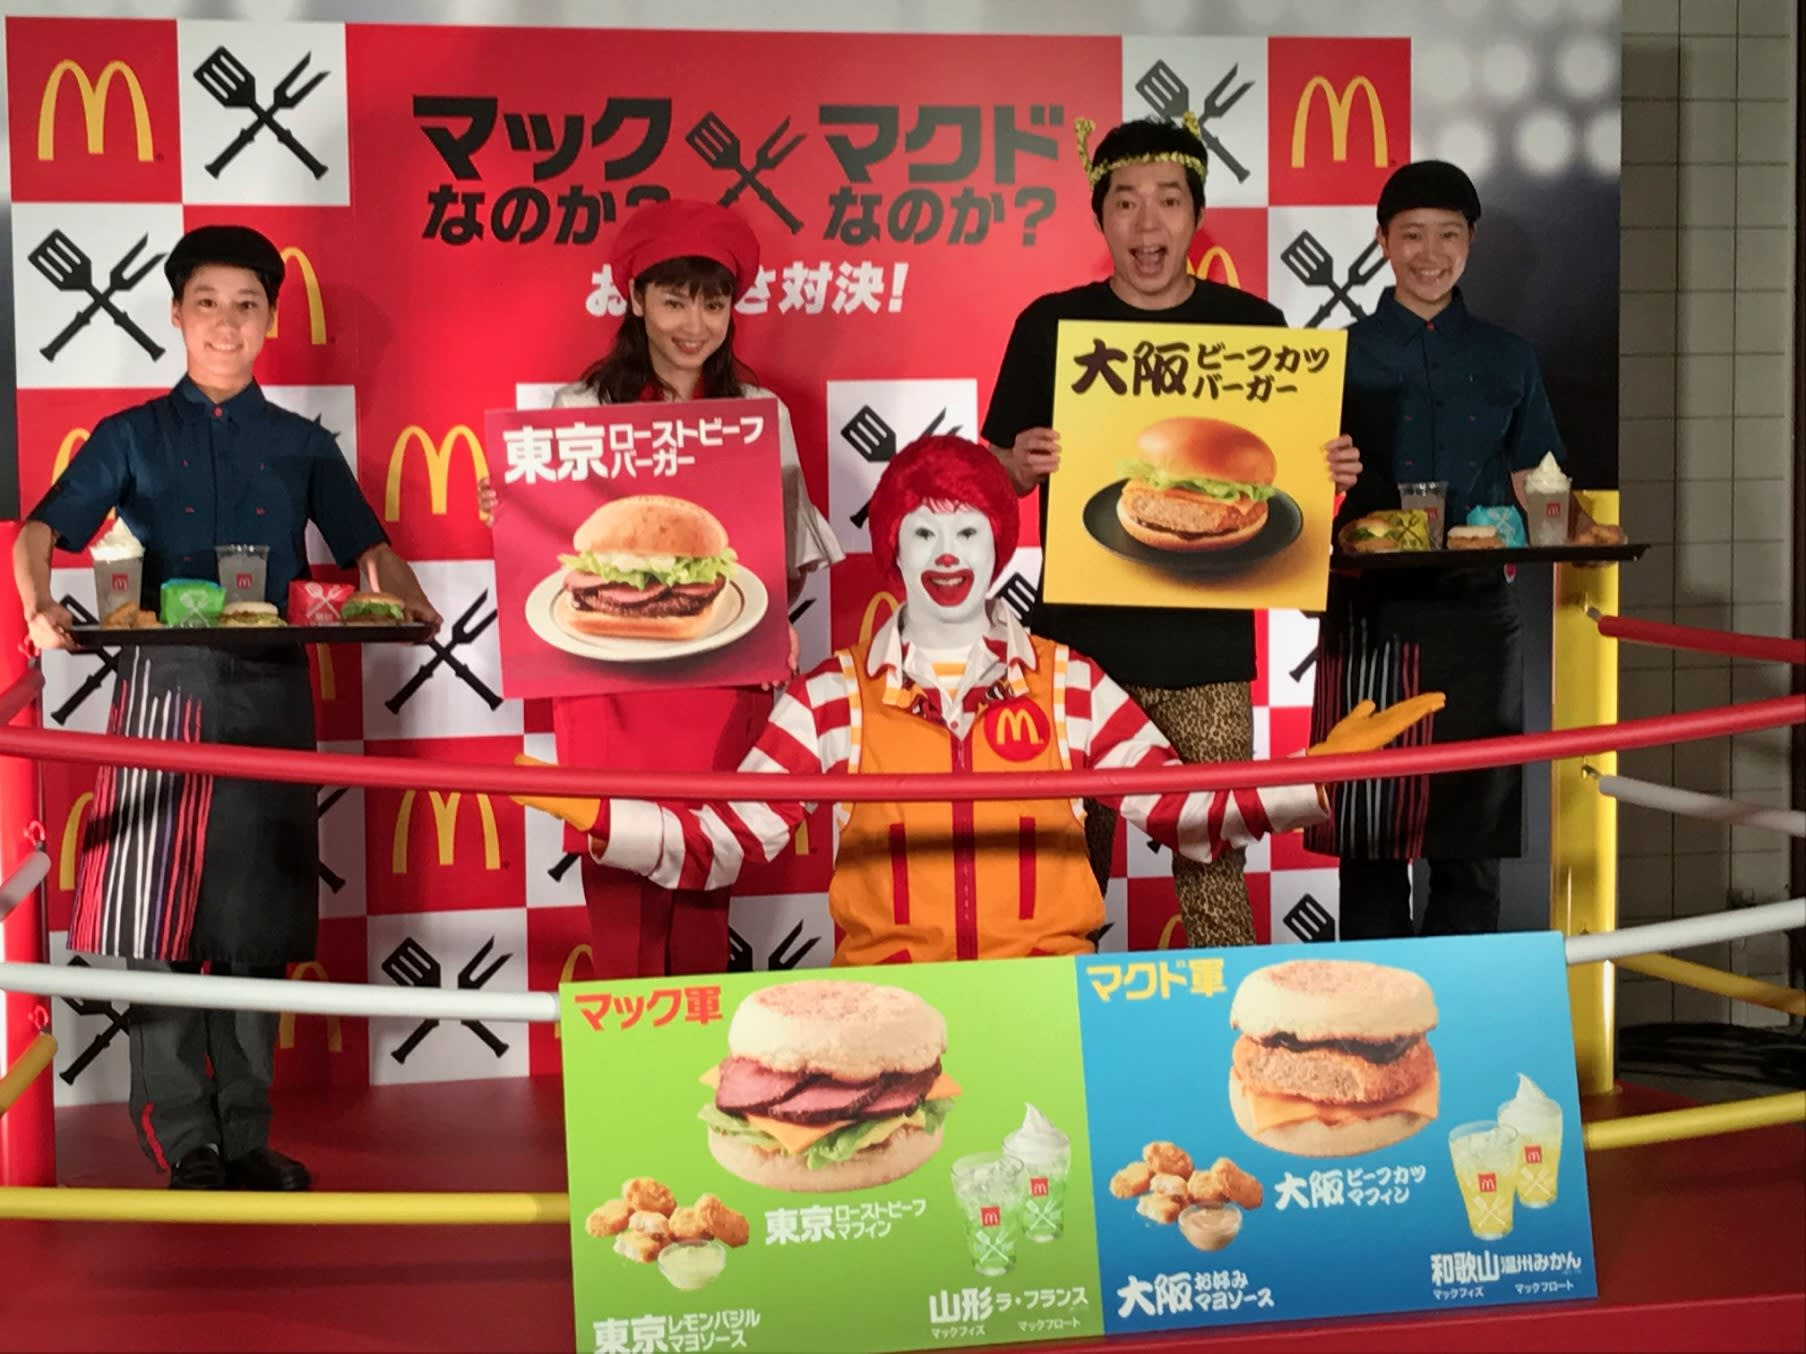 Japanese McDonald's fans select 'Makudo' as official nickname